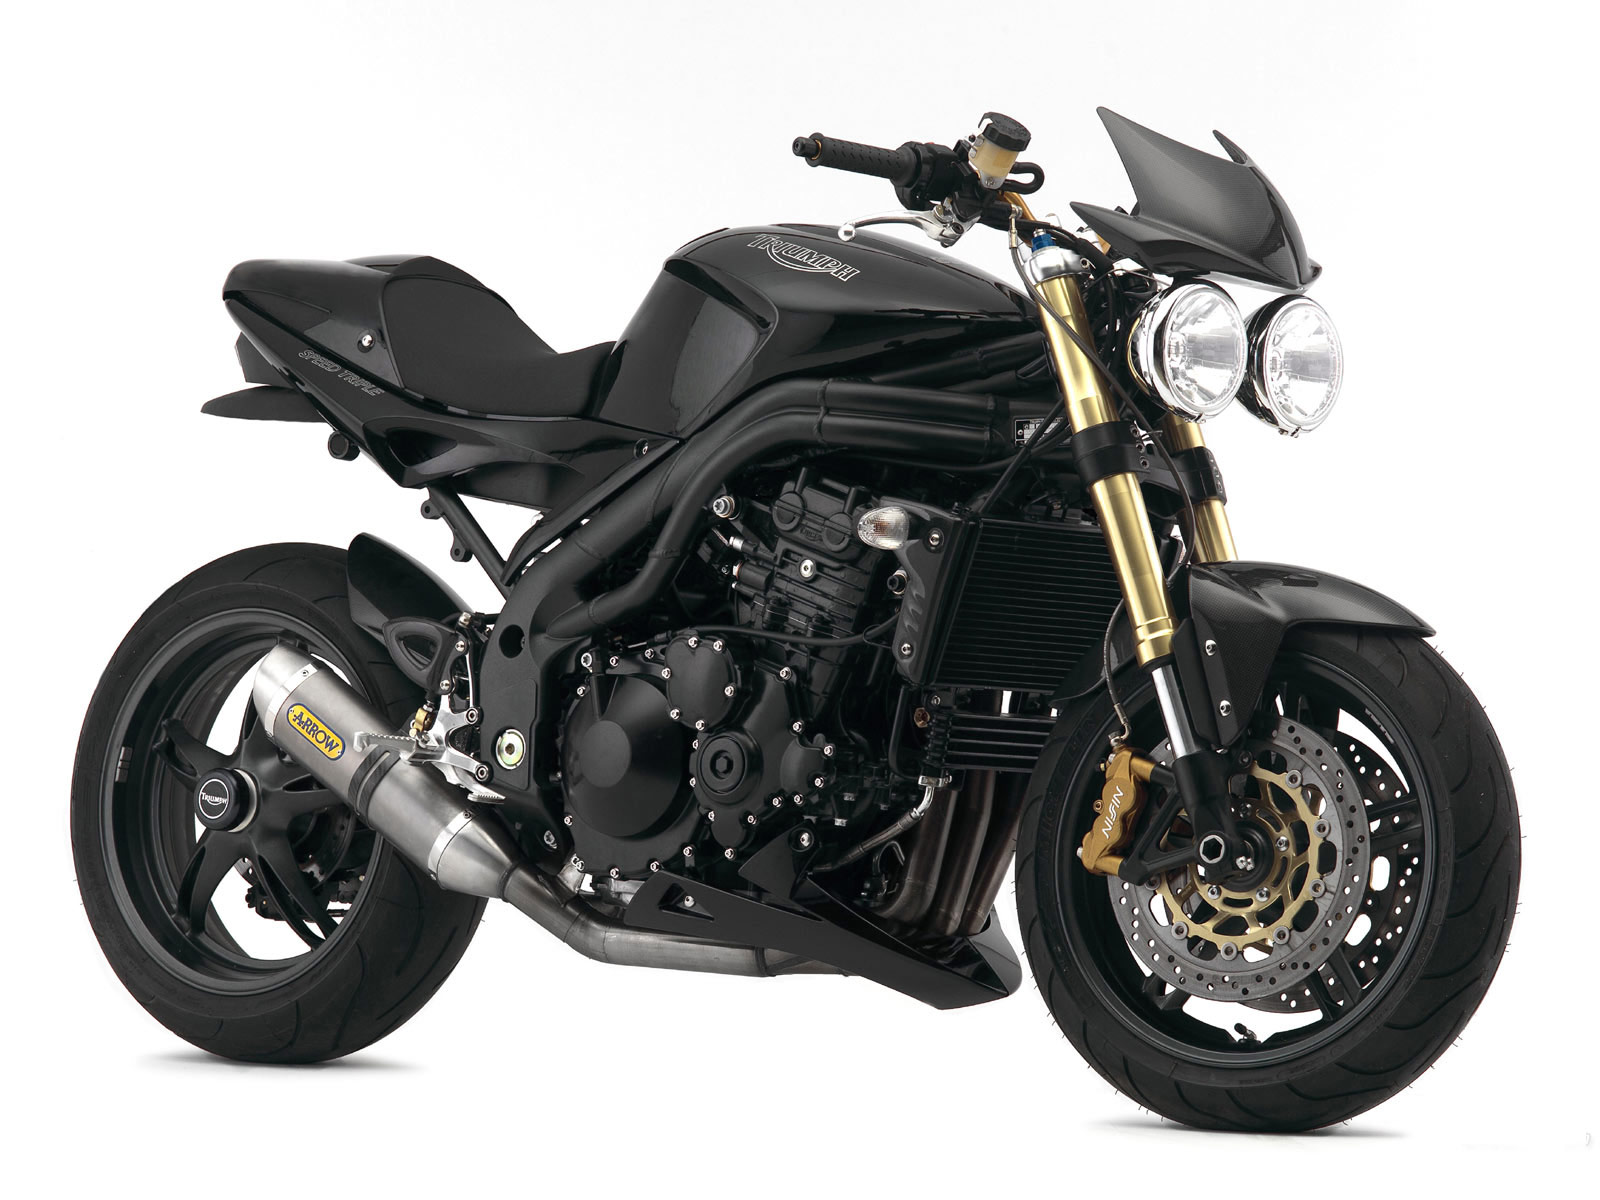 2007 triumph speed triple motorcycle photos and specifications. Black Bedroom Furniture Sets. Home Design Ideas